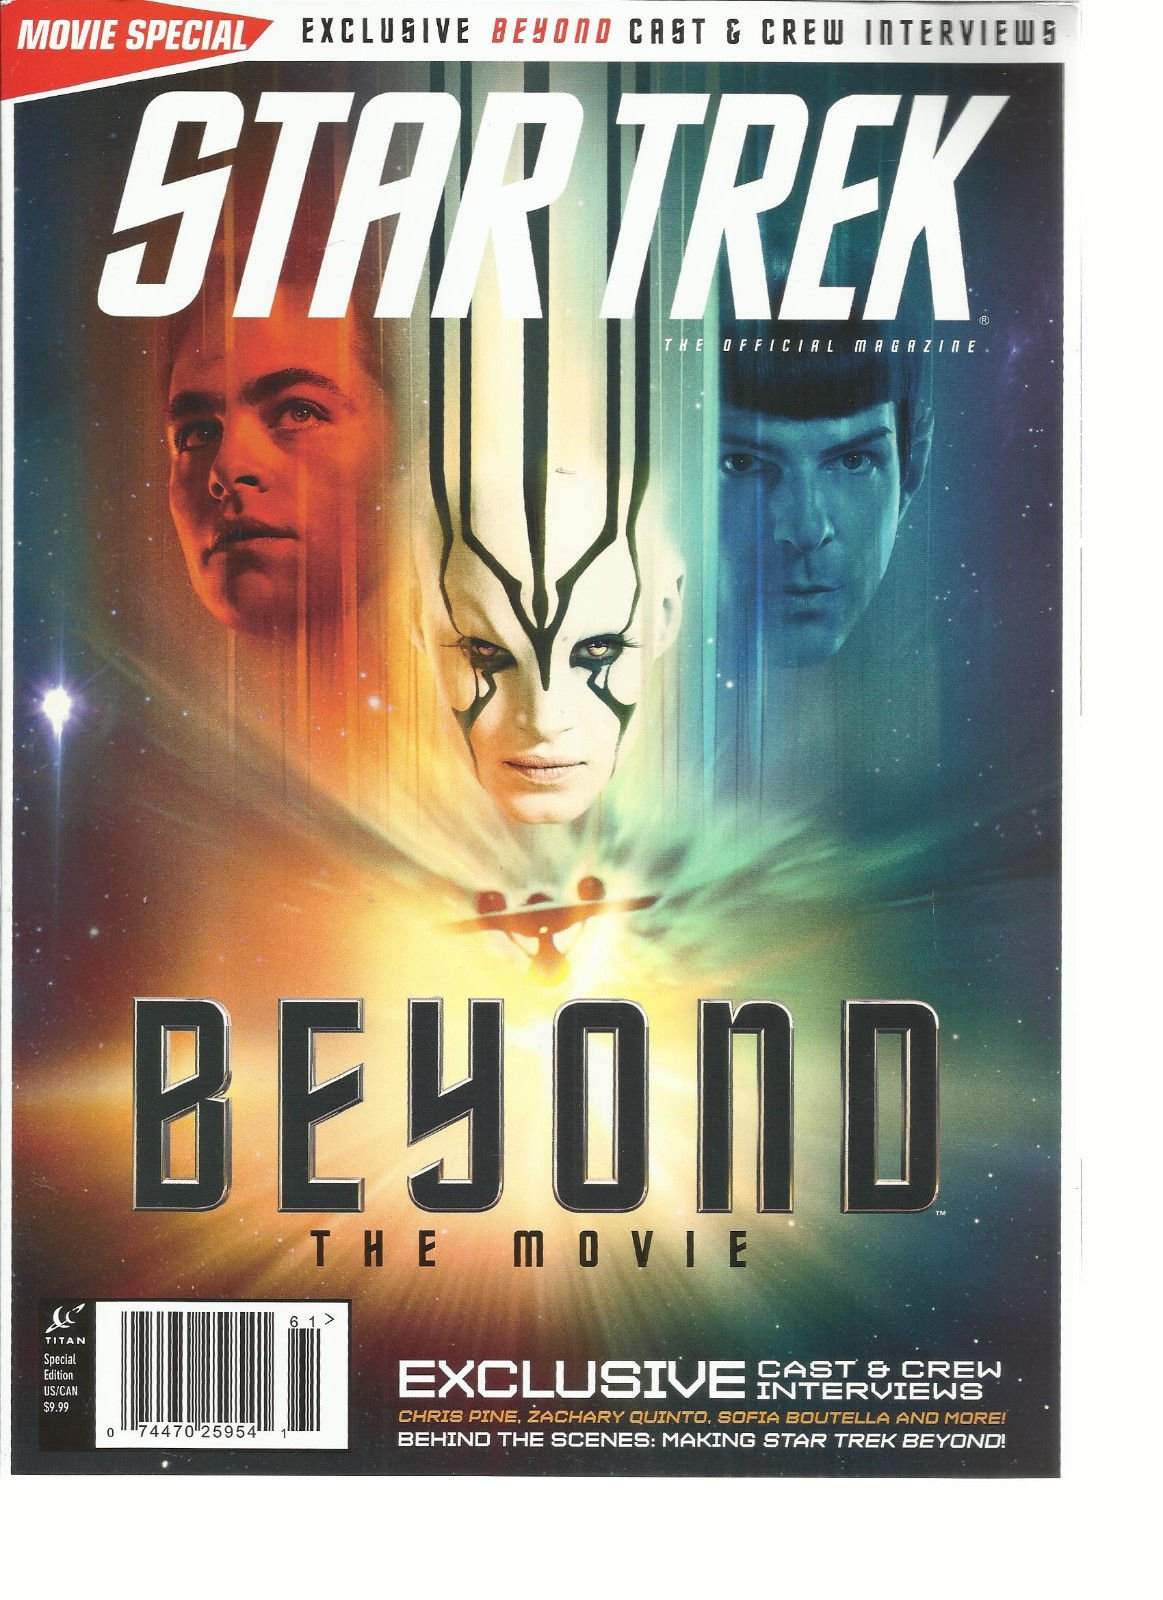 STAR TREK, THE OFFICIAL SPECIAL MAGAZINE BEYOND THE MOVIE SPECIAL EDITION,2016